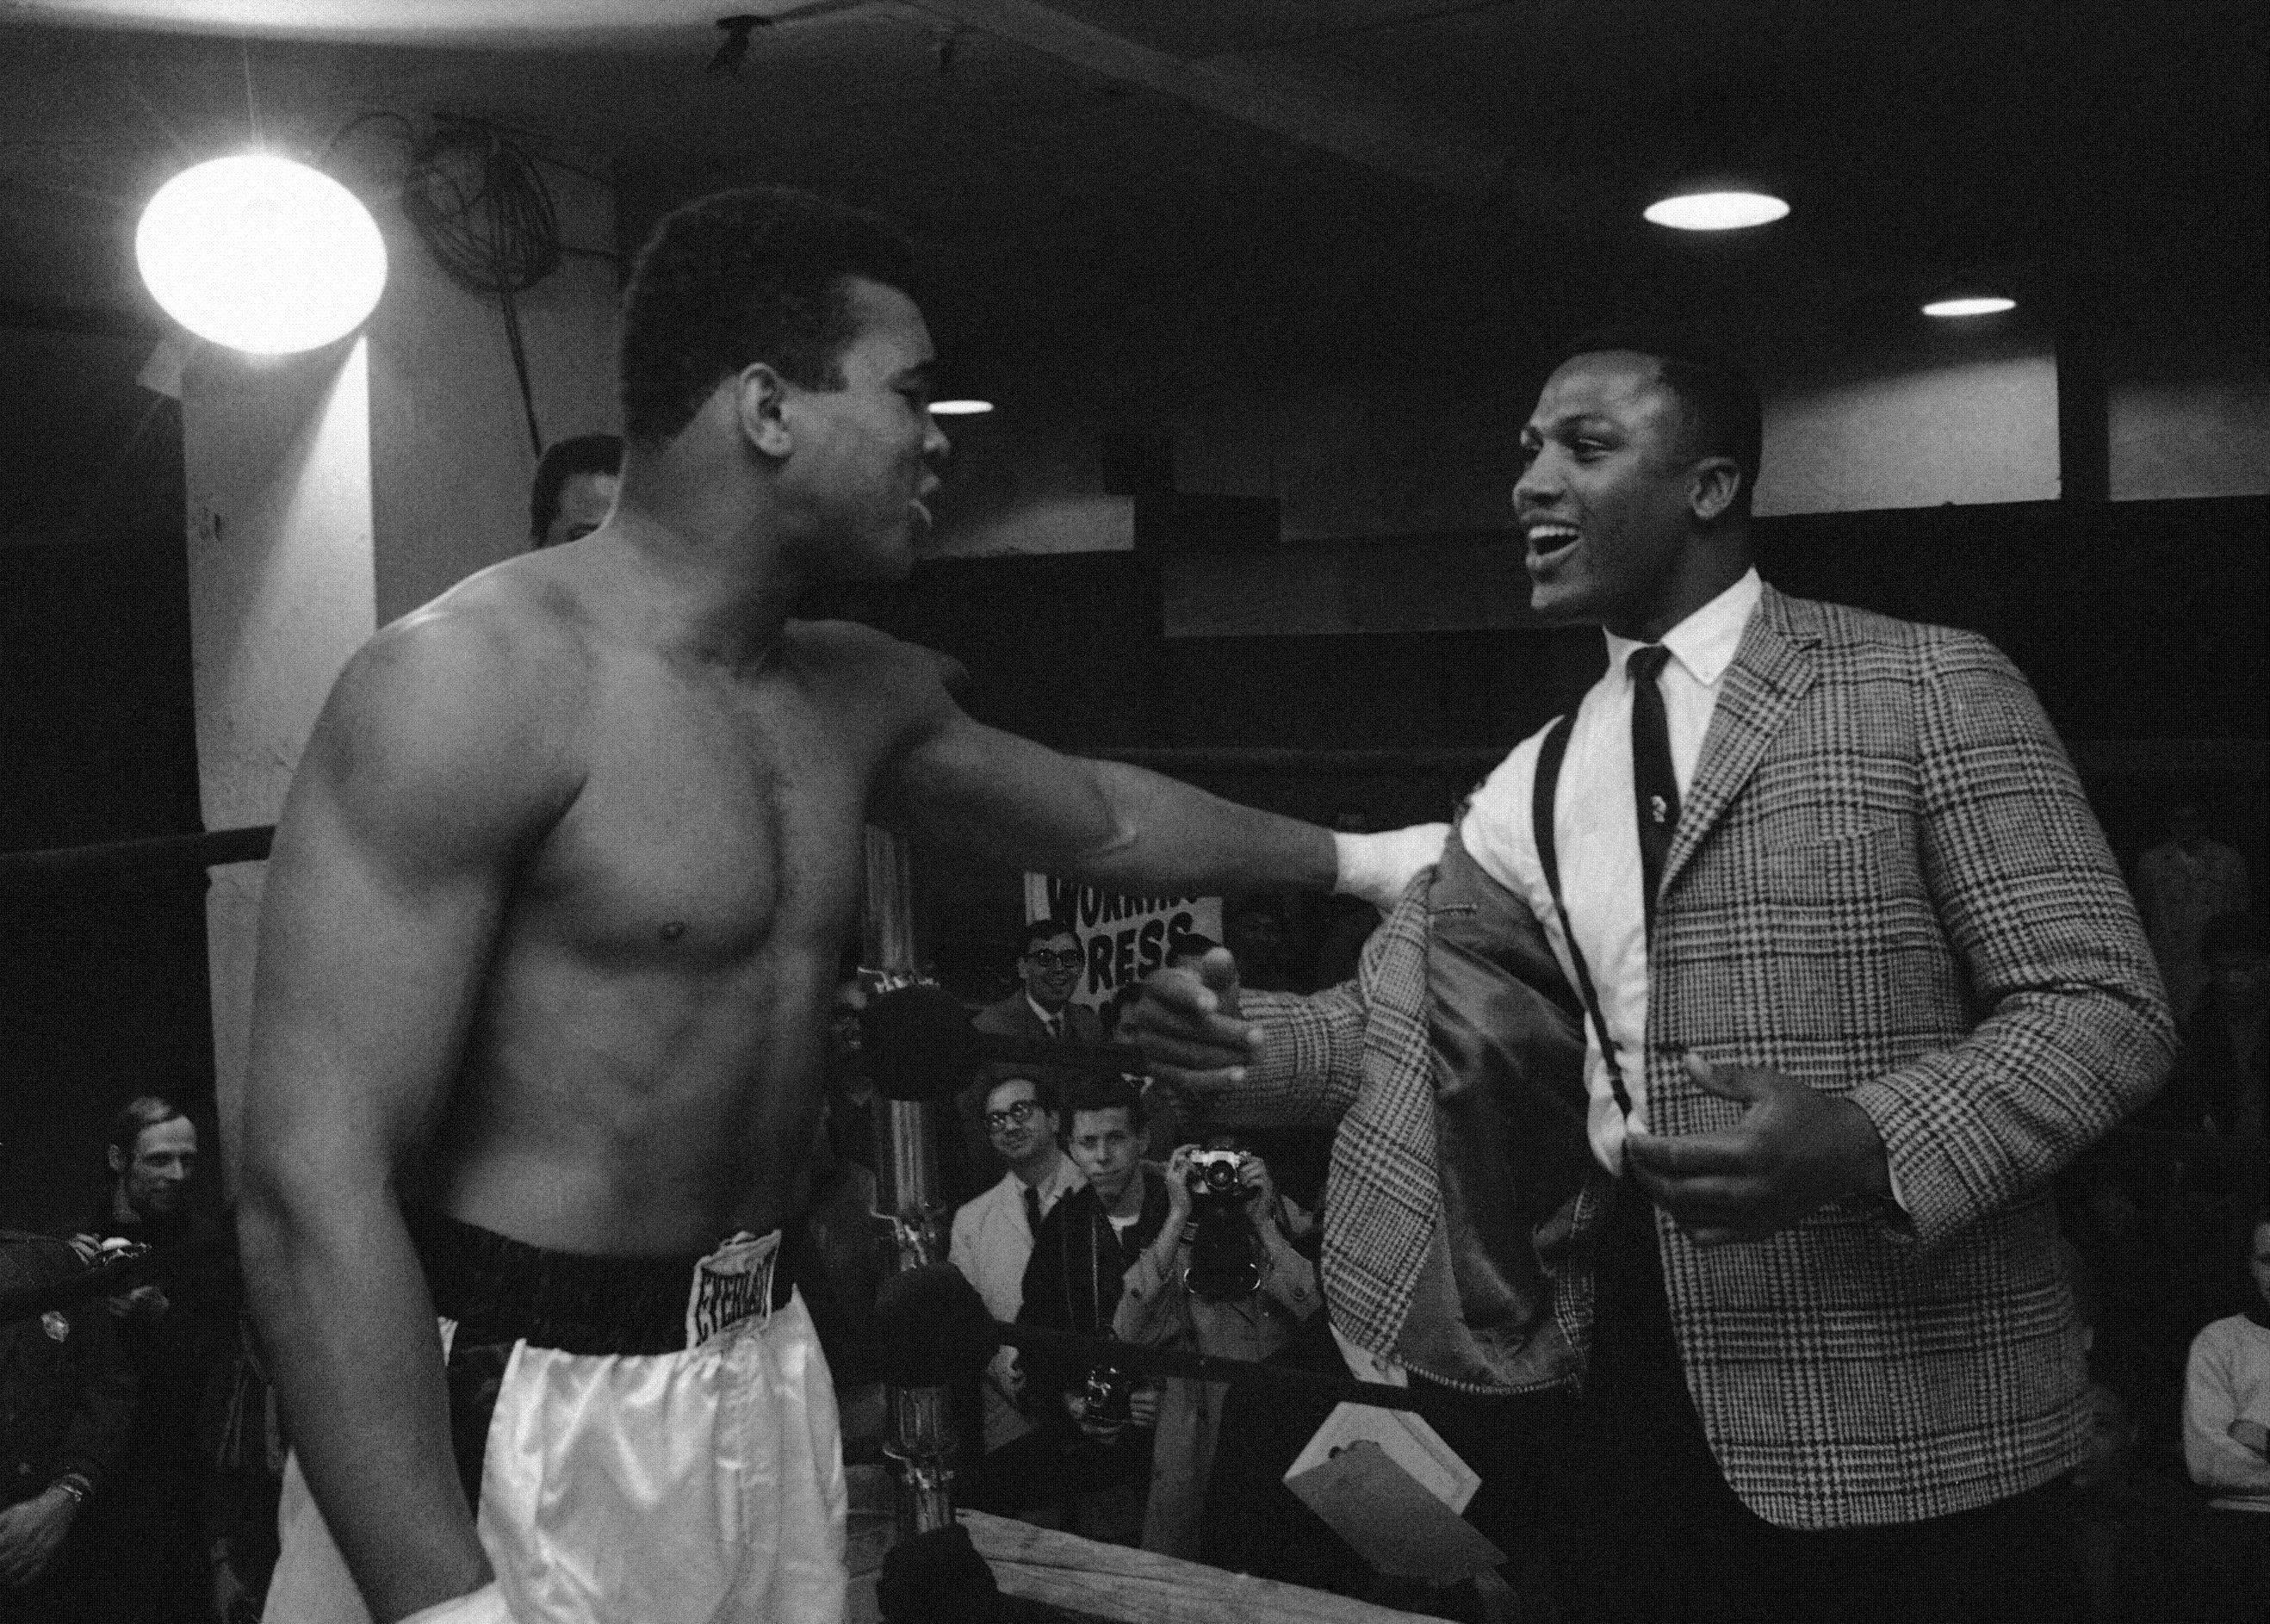 In this March 15, 1967, file photo, Joe Frazier, right, a heavyweight boxer and a contender for champion Muhammad Ali's (Cassius Clay) title, is kidded by Clay at the champion's training quarters at Madison Square Garden in New York. Frazier, the former heavyweight champion who handed Muhammad Ali his first defeat yet had to live forever in his shadow, died Monday Nov. 7, 2011, after a brief final fight with liver cancer. He was 67.